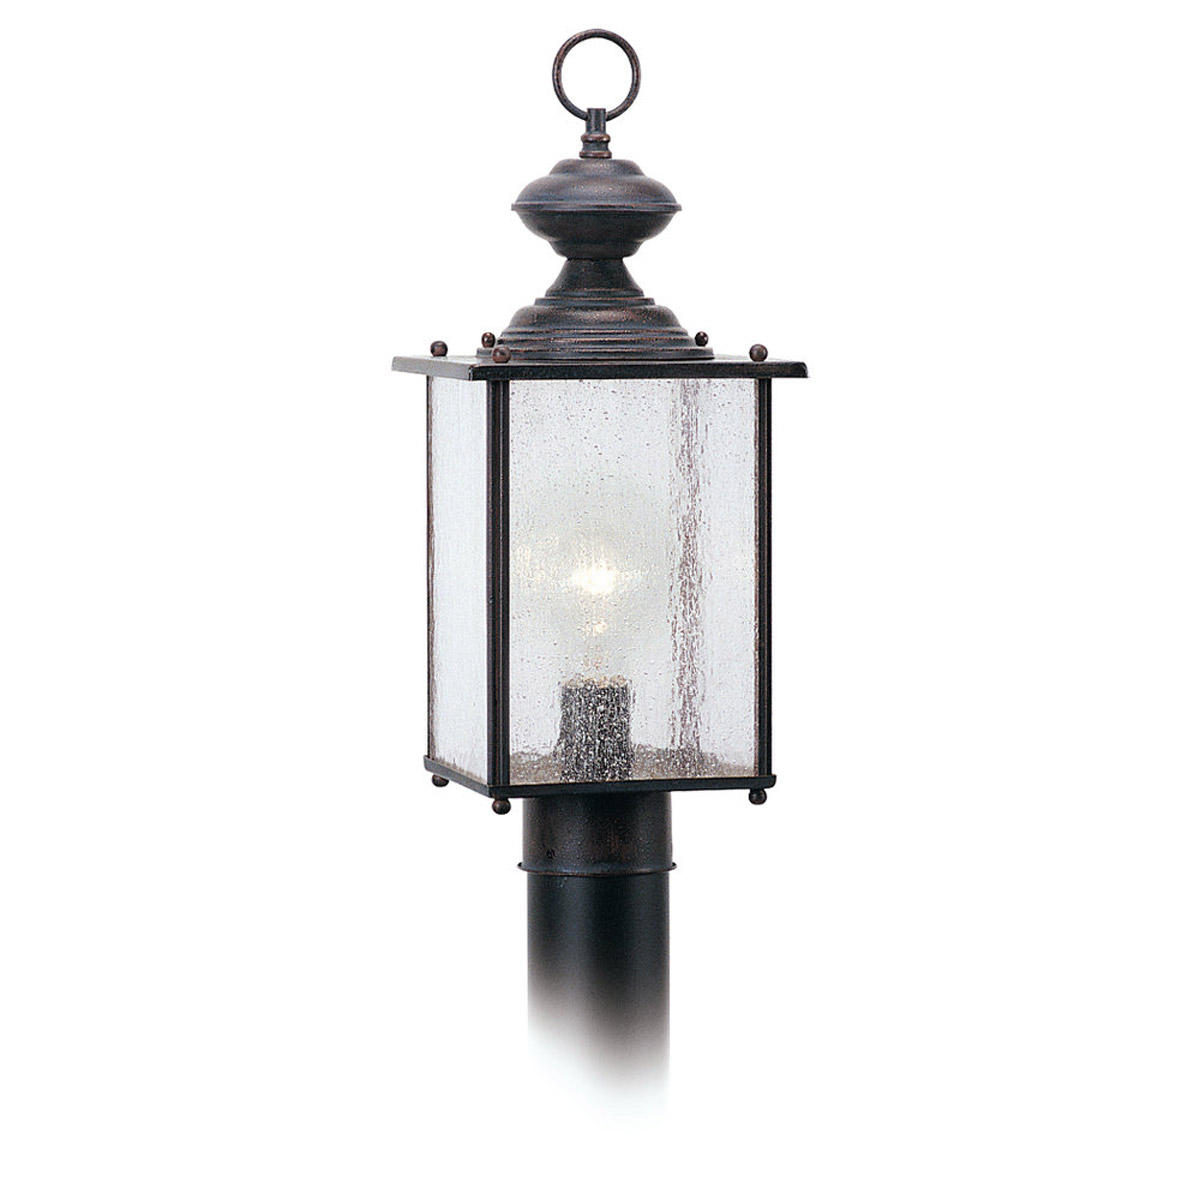 Sea Gull Lighting Jamestowne 1 Light Outdoor Post Lantern in Textured Rust Patina 8286-08